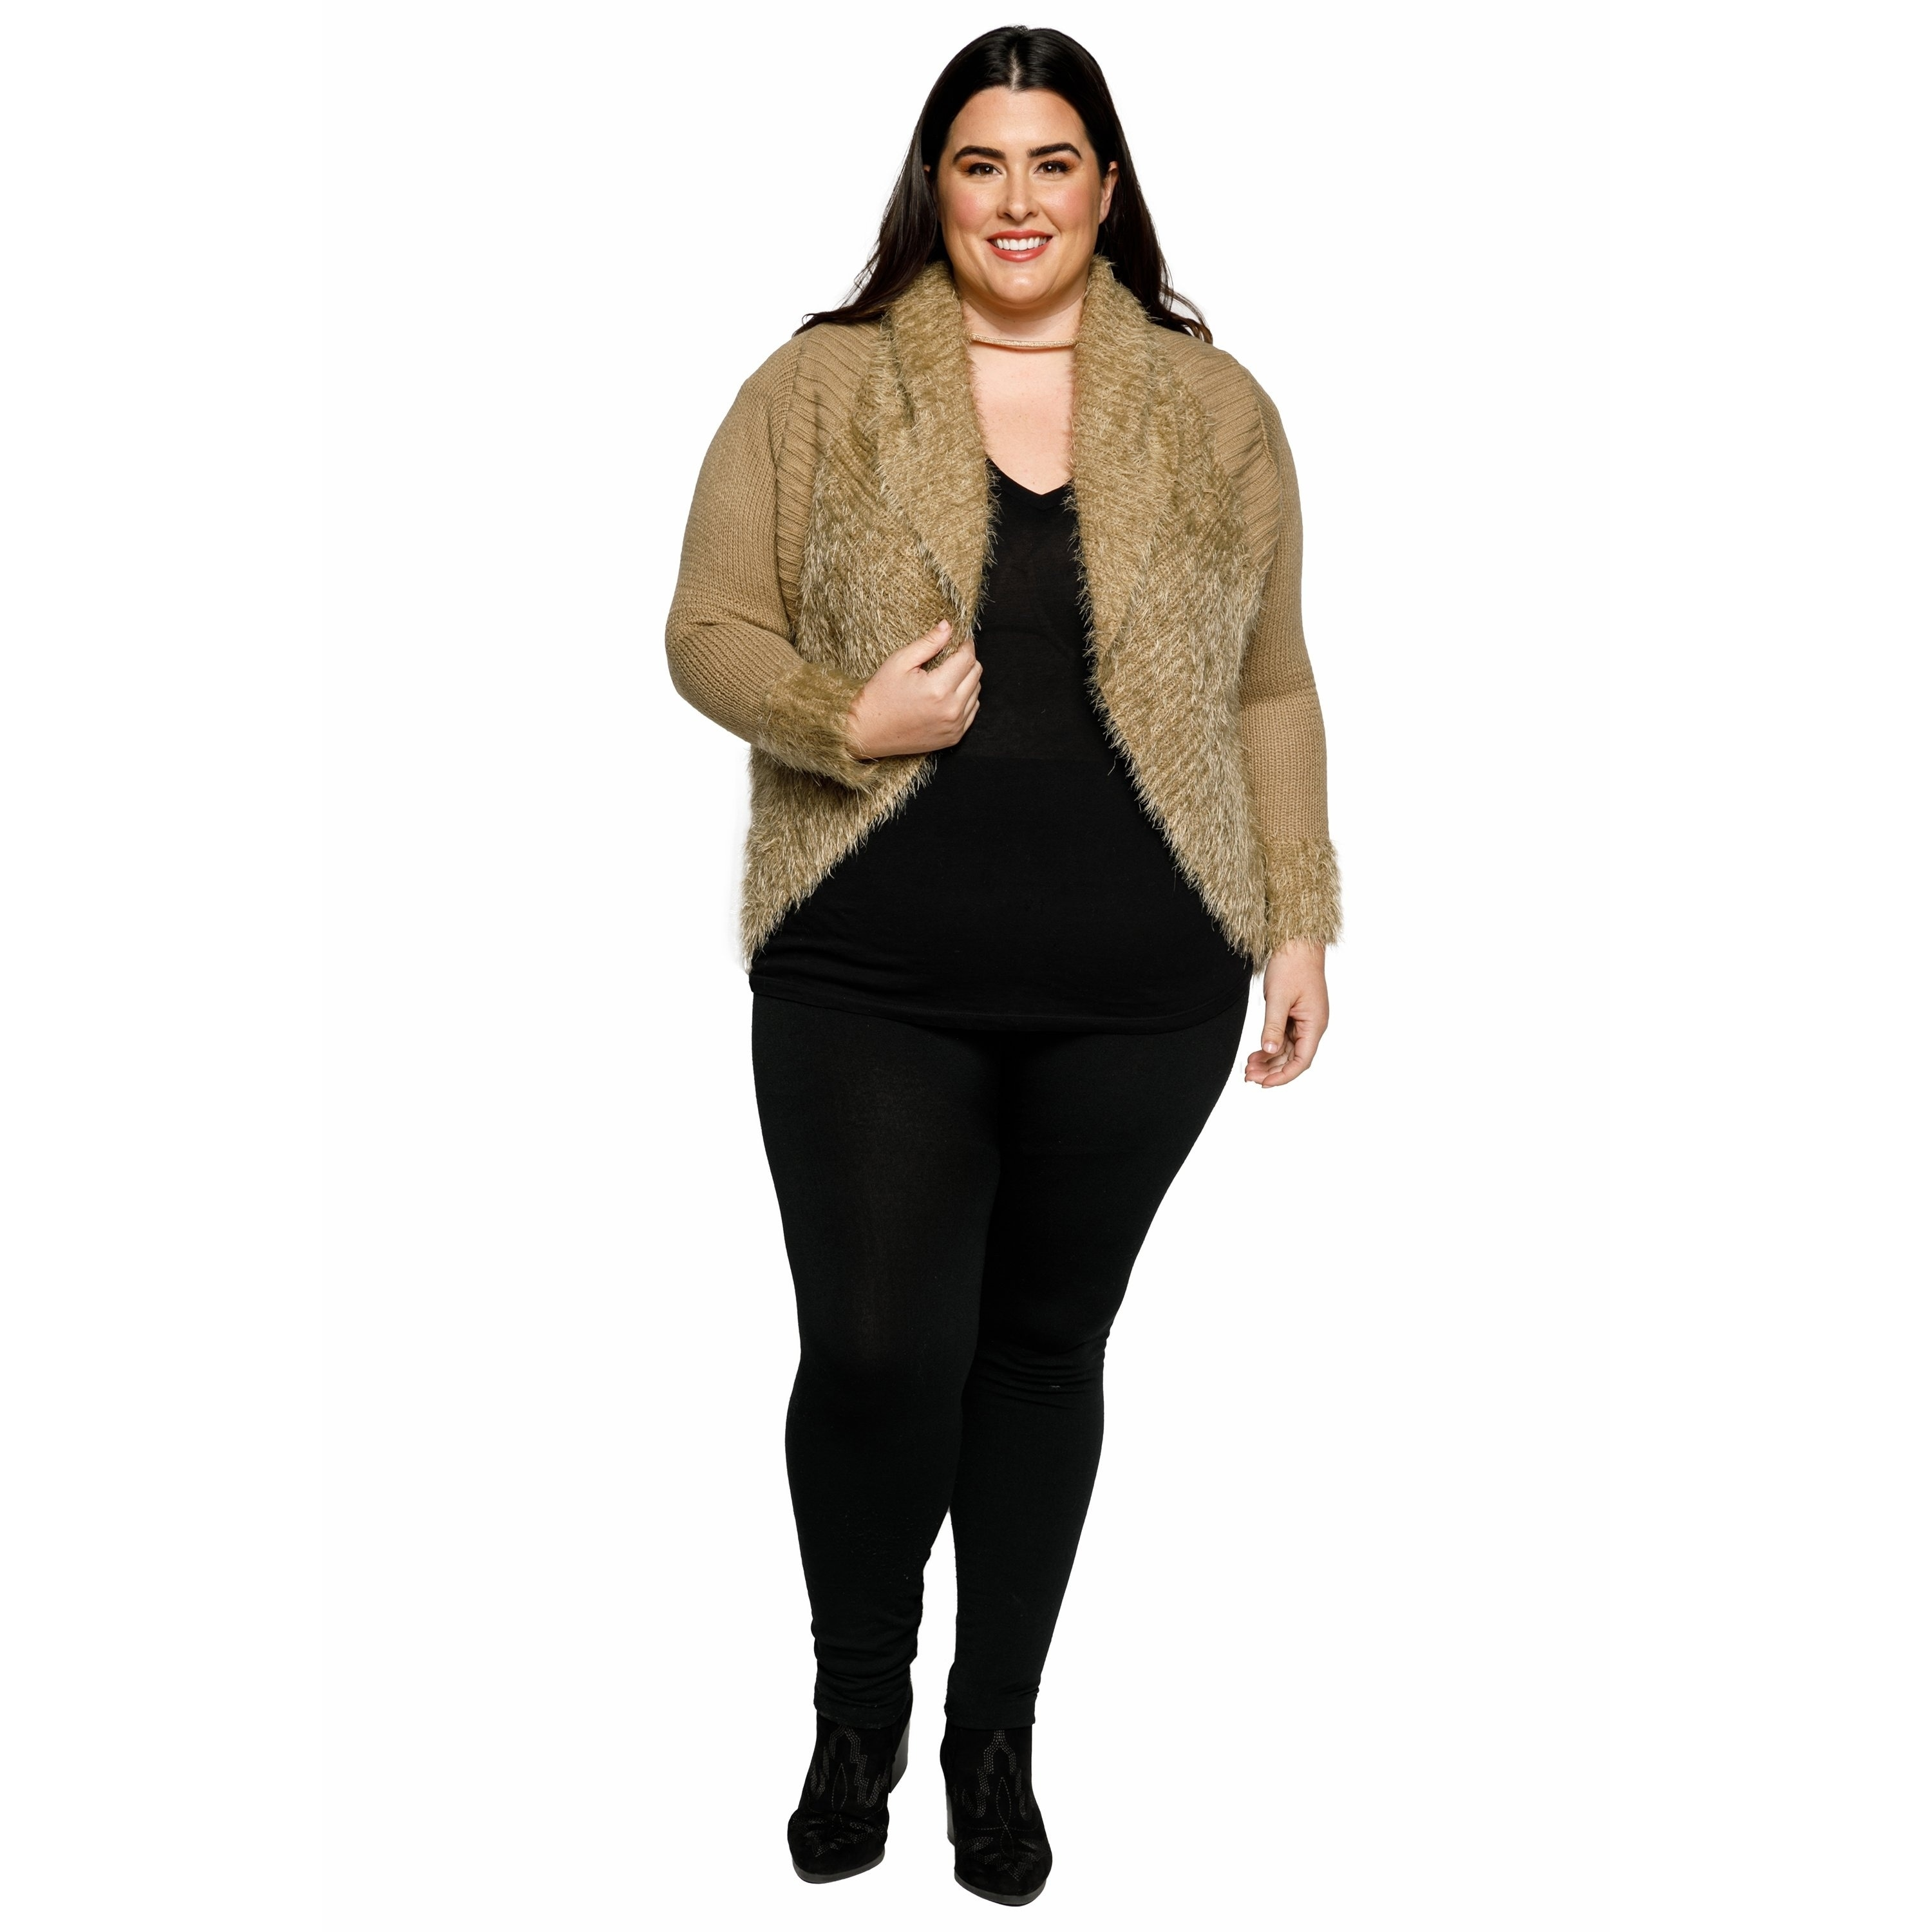 10030574b3d76 Shop Xehar Womens Plus Size Fuzzy Cocoon Open Front Cardigan Sweater - Free  Shipping On Orders Over  45 - Overstock.com - 18150703